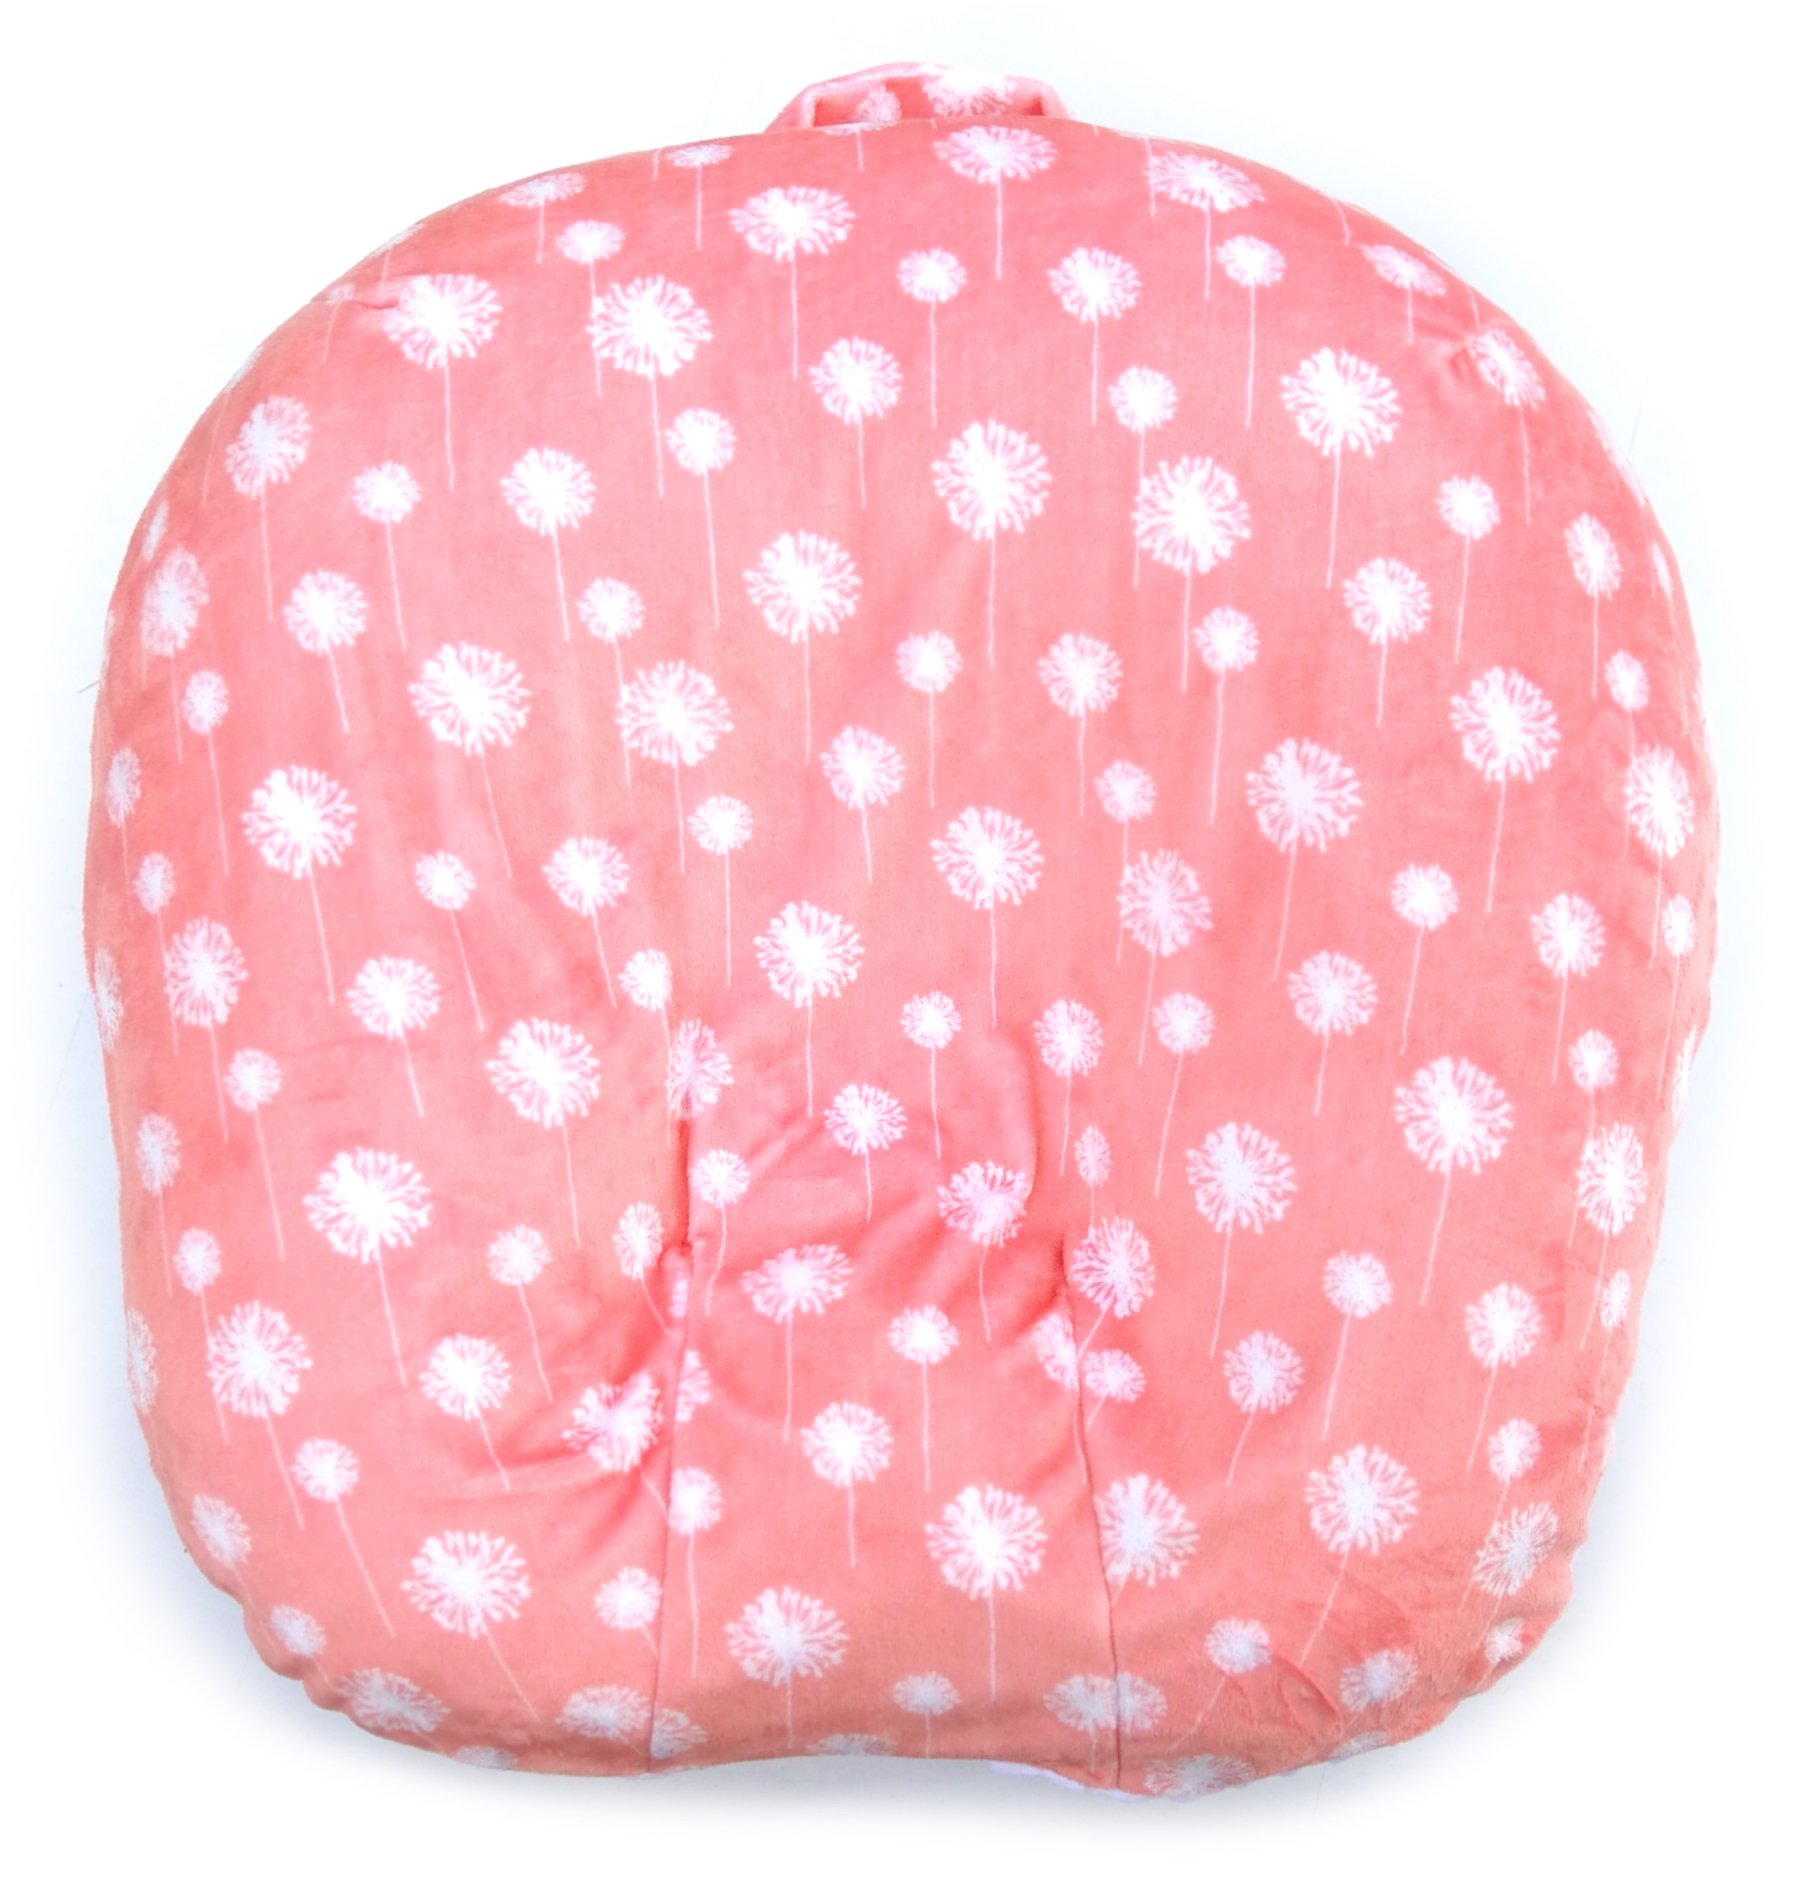 2cloud9 Removable Cover for Newborn Lounger | Baby Lounger Cover | Reversible Sides of Dot Minky and Cuddle Fleece Fabrics | Made in USA (No. 11)